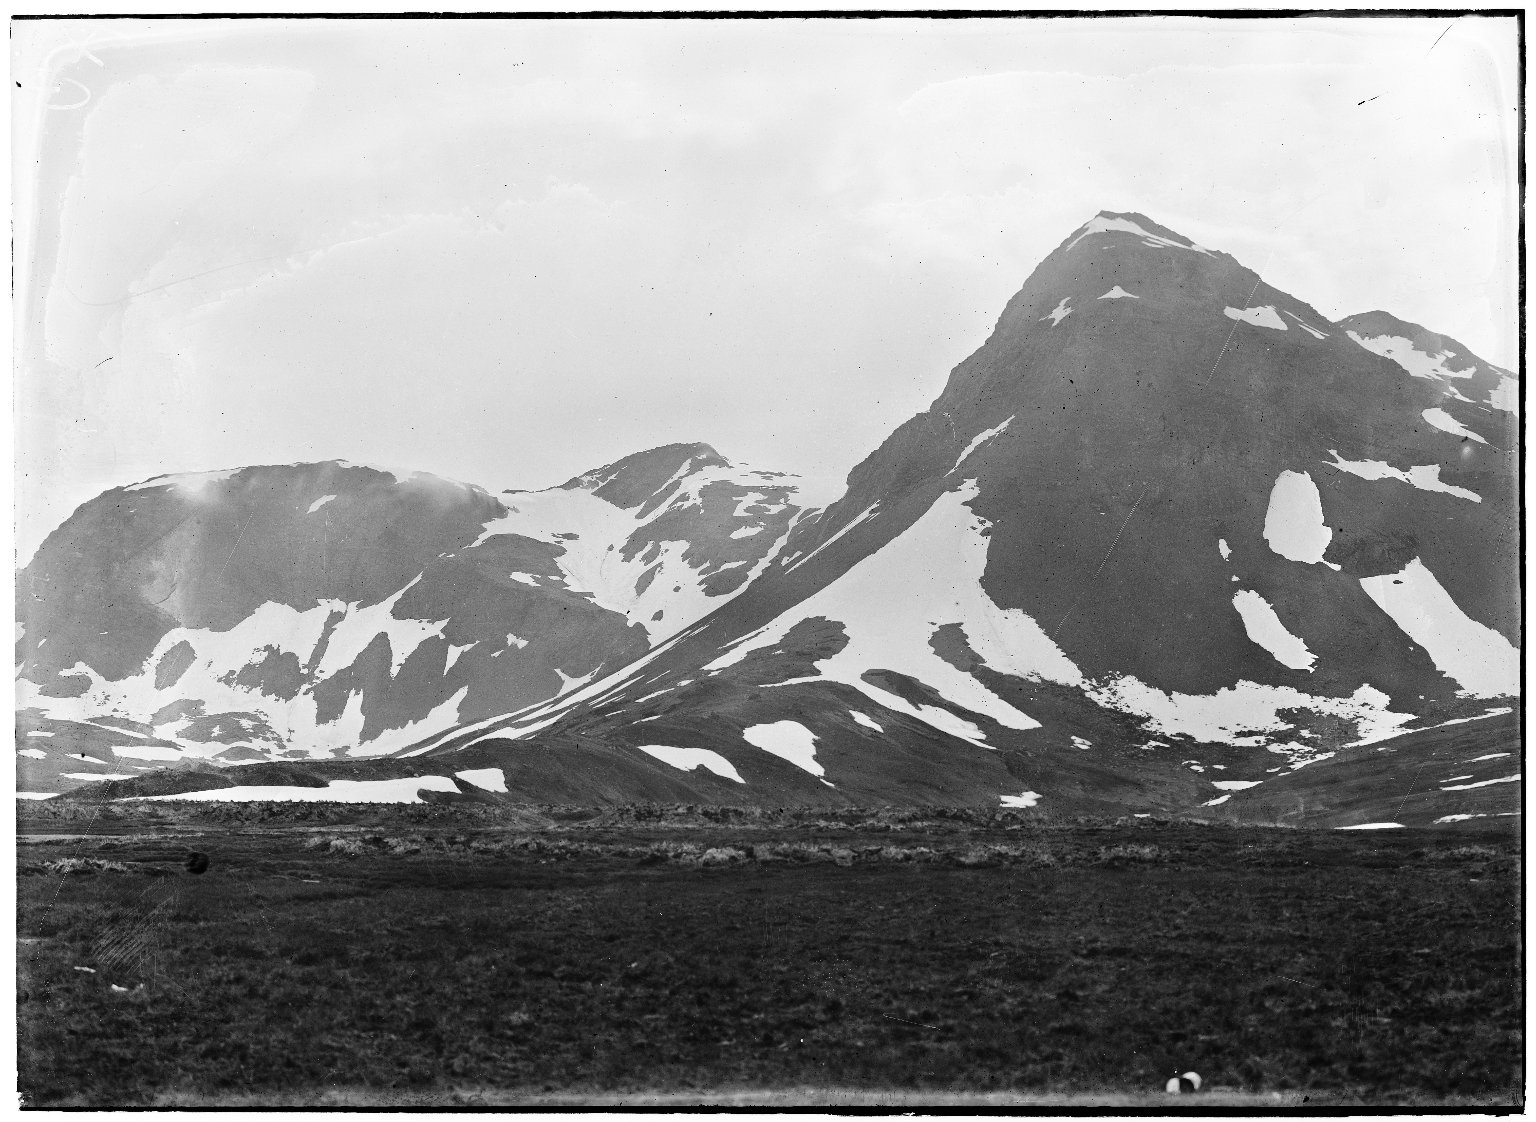 Prospecting Cruise to South Georgia and Antartica, 1913-14, P.012